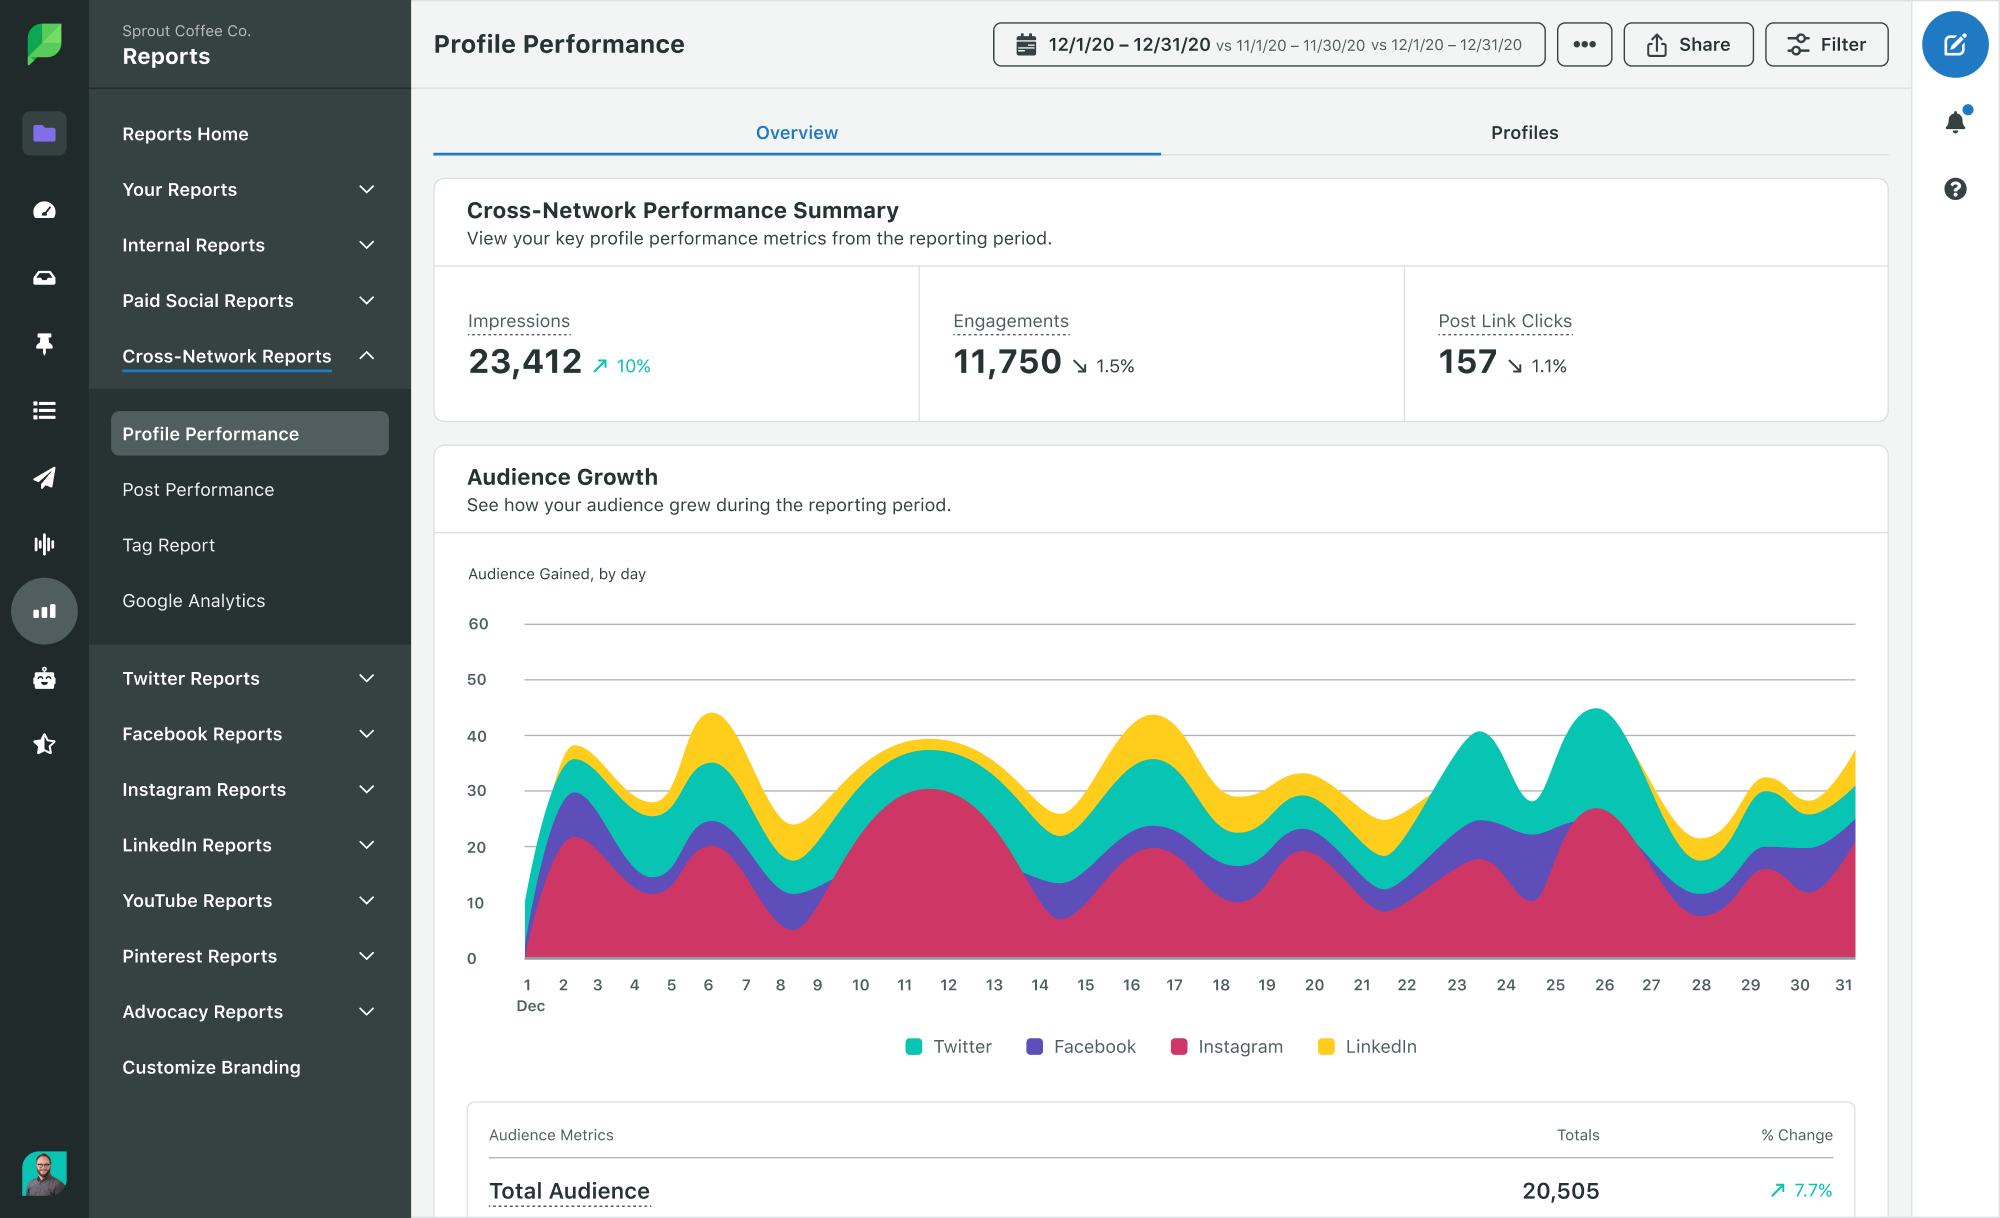 profile performance report from sprout showing impressions